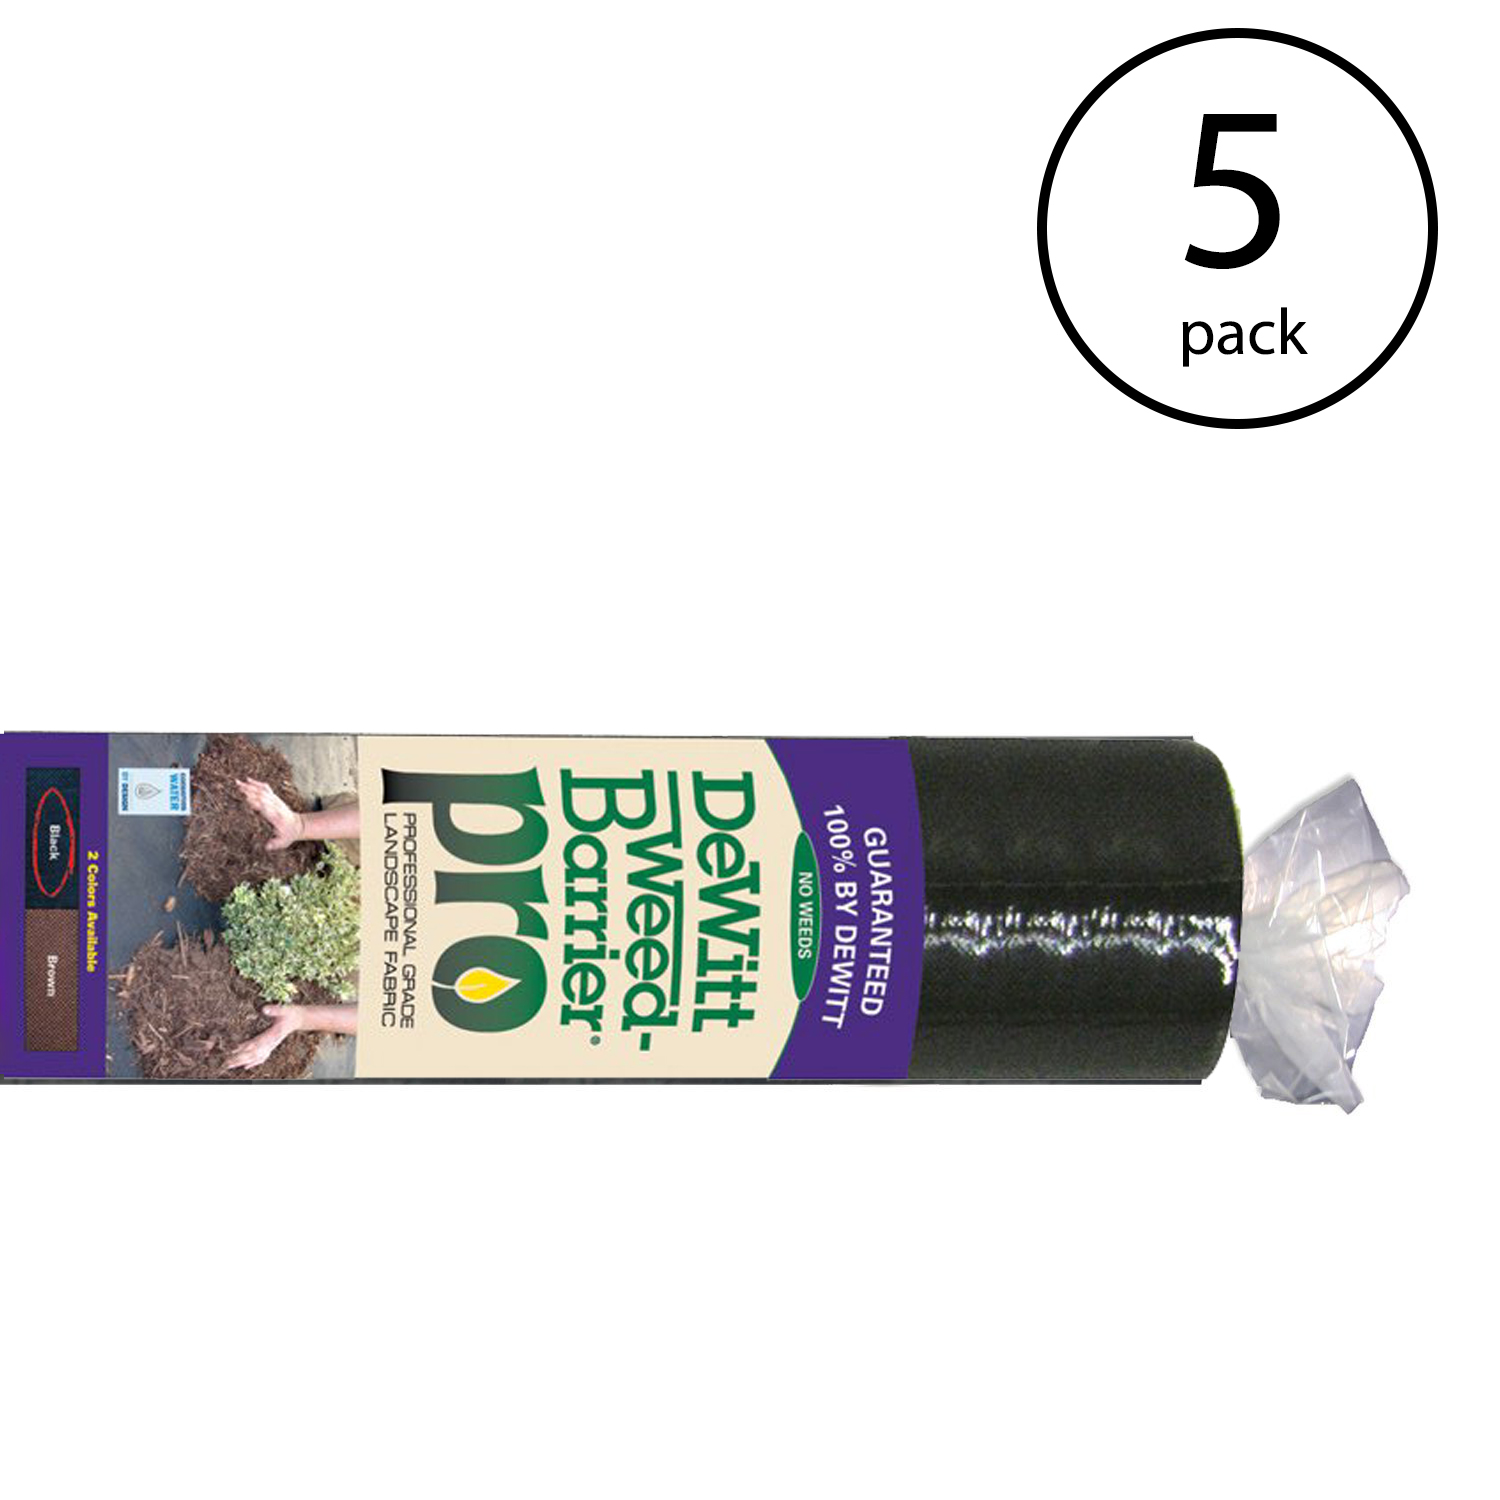 DeWitt Weed Barrier Pro 3 Ounce Landscape Fabric in Black, 4' x 100' (5 Pack)